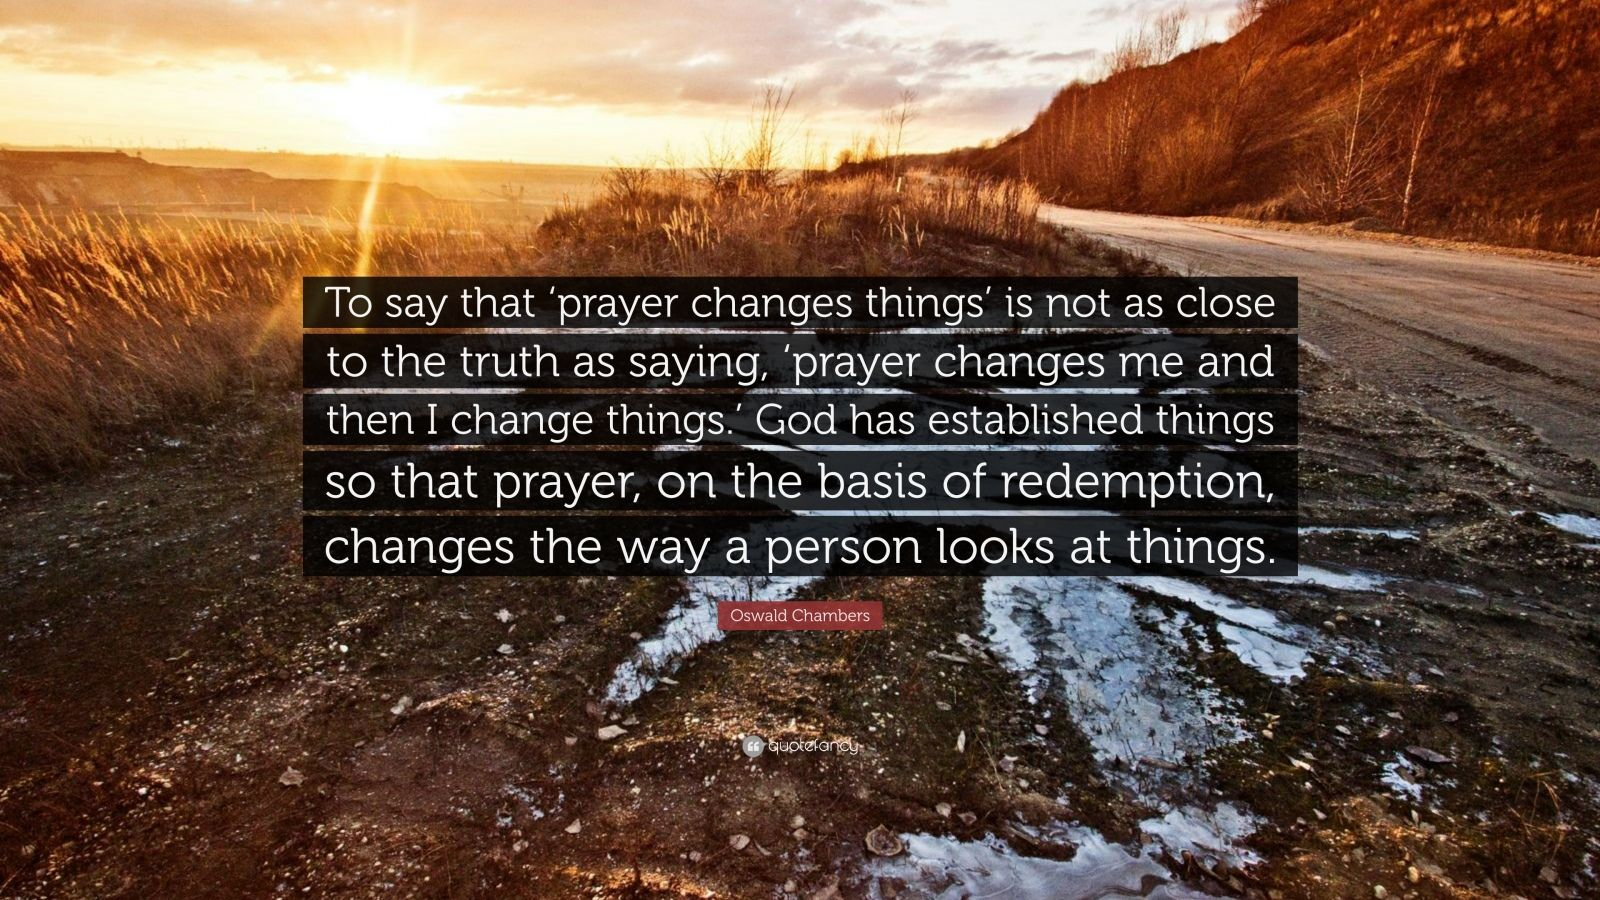 "Oswald Chambers Quote: ""To say that 'prayer changes things' is not as close to the truth as saying, 'prayer changes me and then I change things.' God has established things so that prayer, on the basis of redemption, changes the way a person looks at things."""